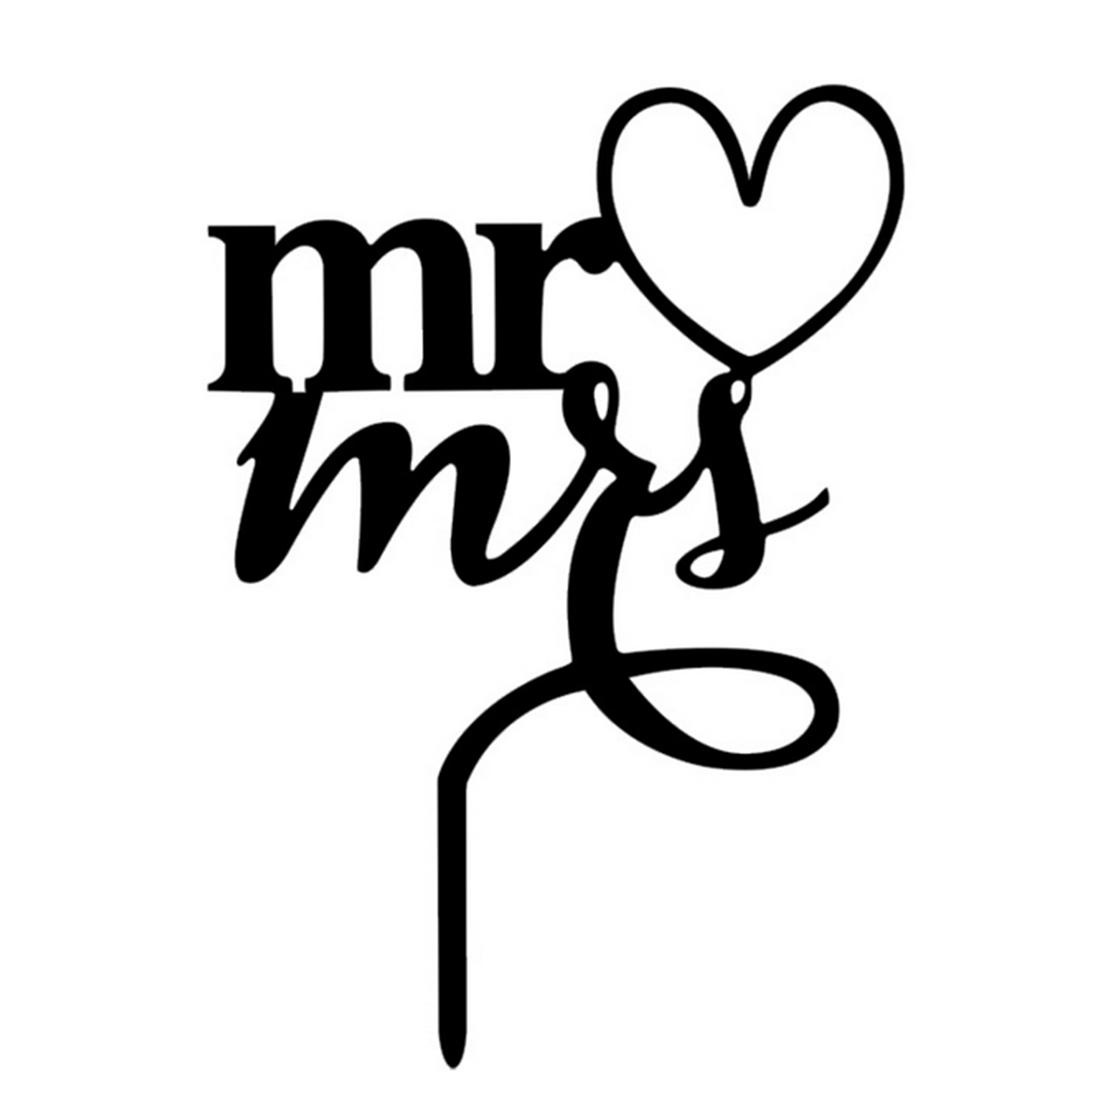 360DSC Romantic Wedding Party Cake Topper Mr. and Mrs. CakeDecoration Supplies - Black - intl